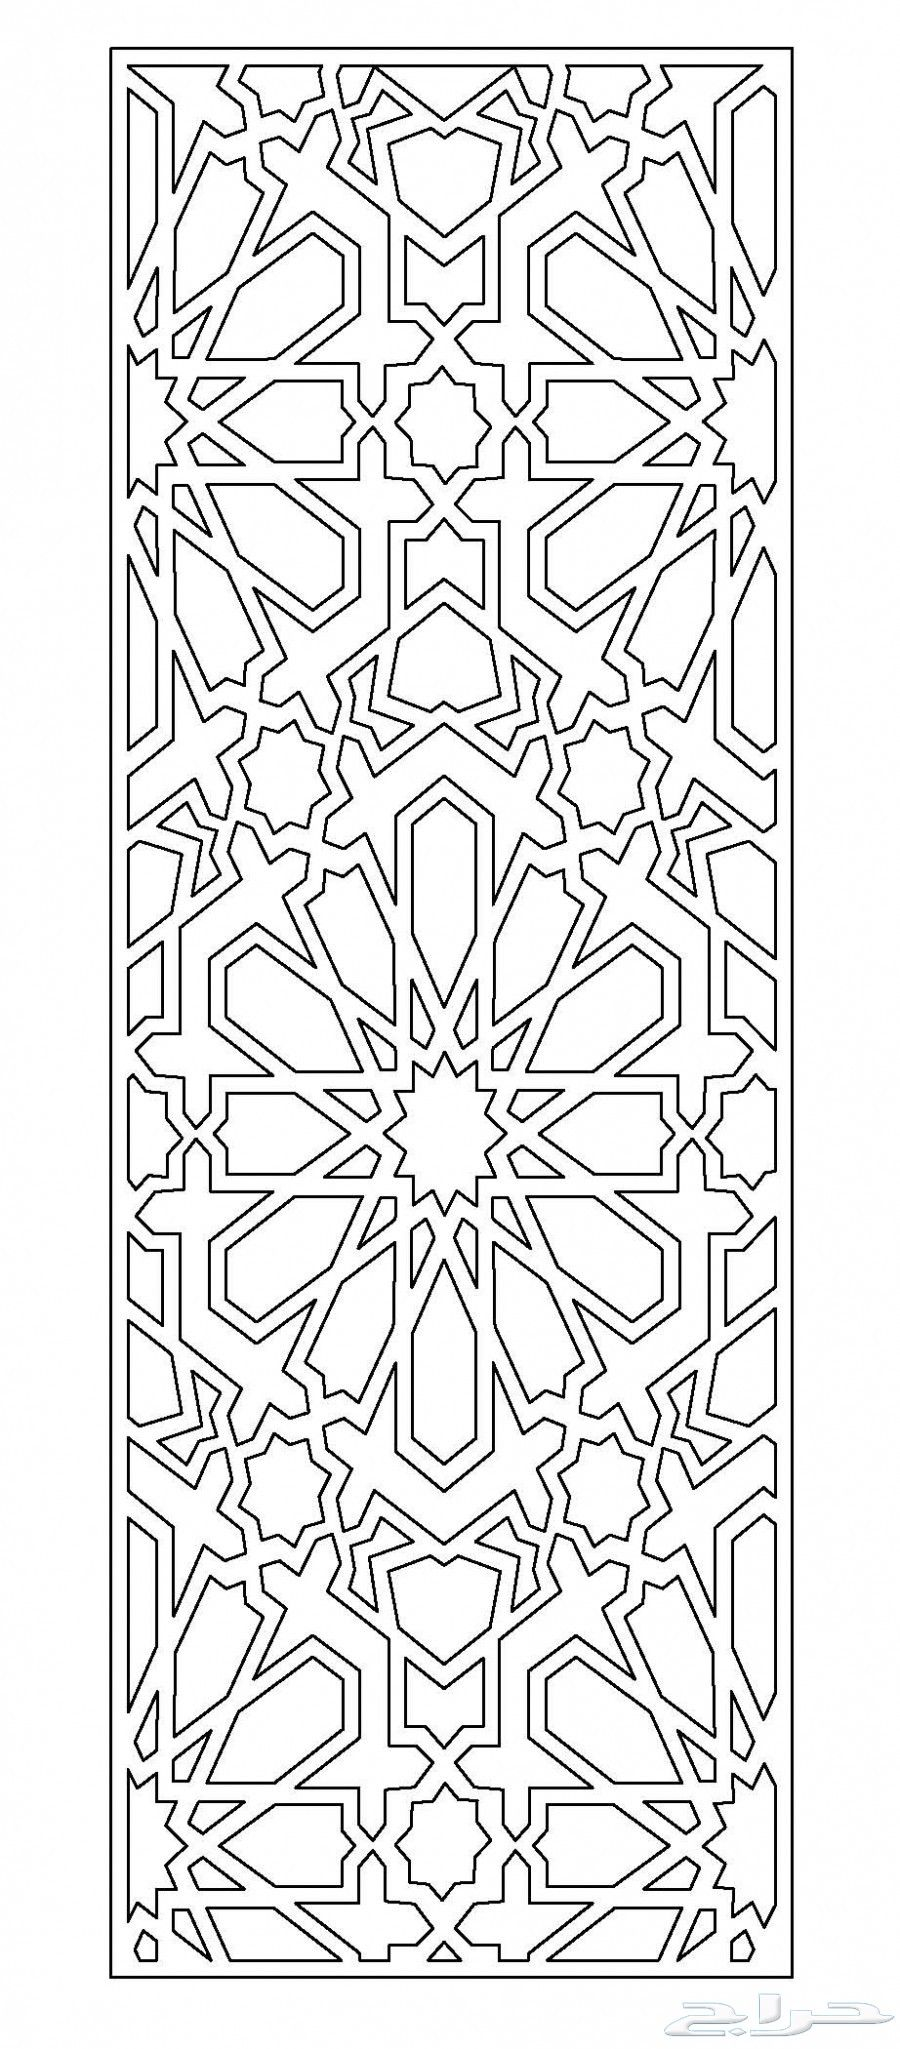 رسوم زخارف أبواب حديد واتس اب 0594685221 Geometric Drawing Islamic Art Pattern Islamic Patterns